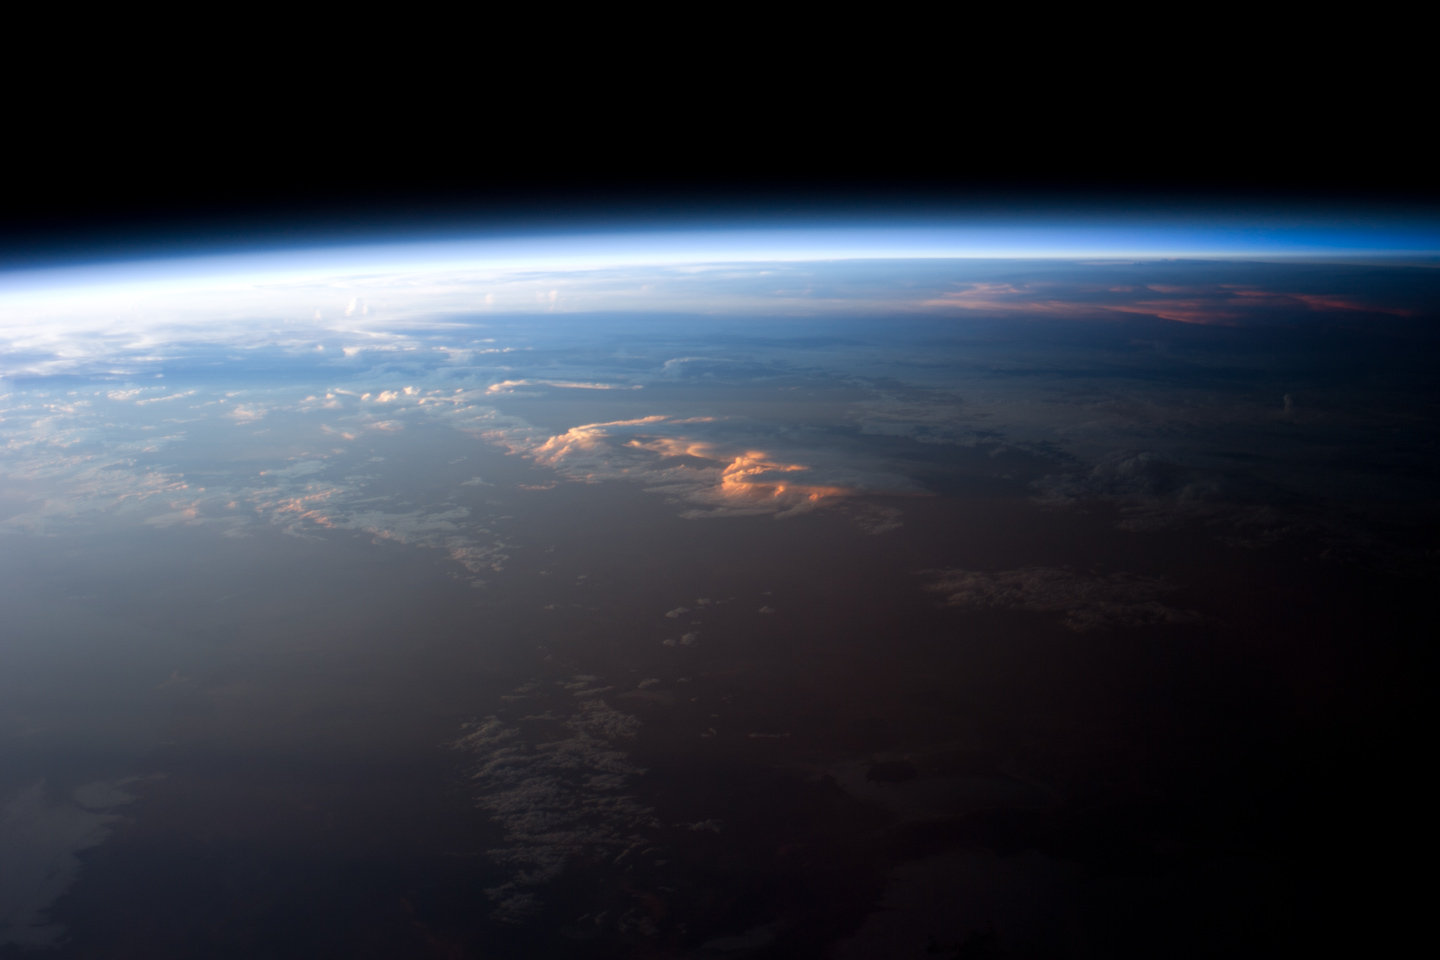 File:ISS-46 Fisheye lens night view of the Earth.jpg - Wikimedia ...